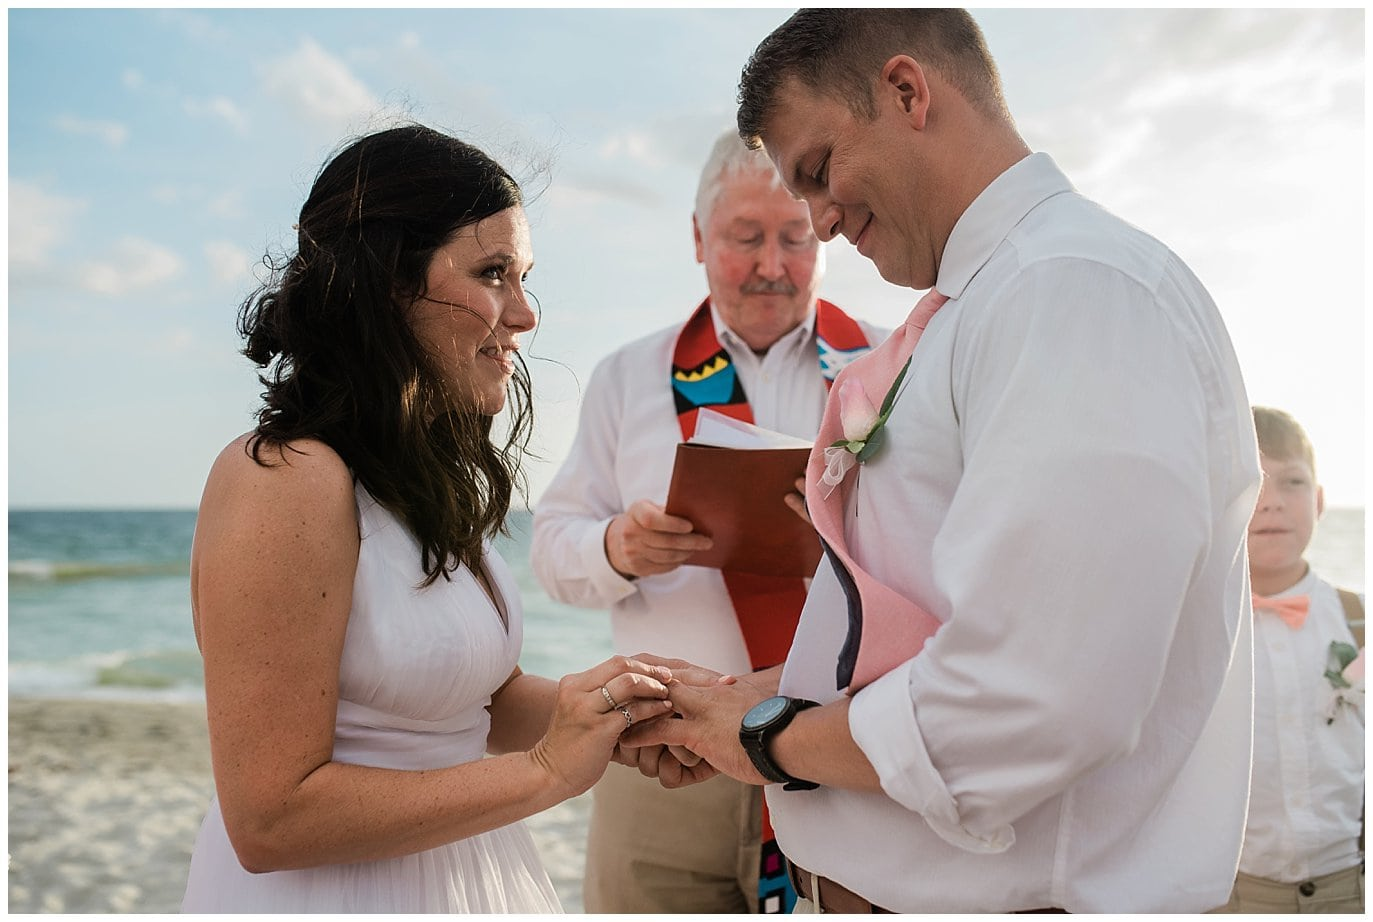 Florida beach ring exchange photo